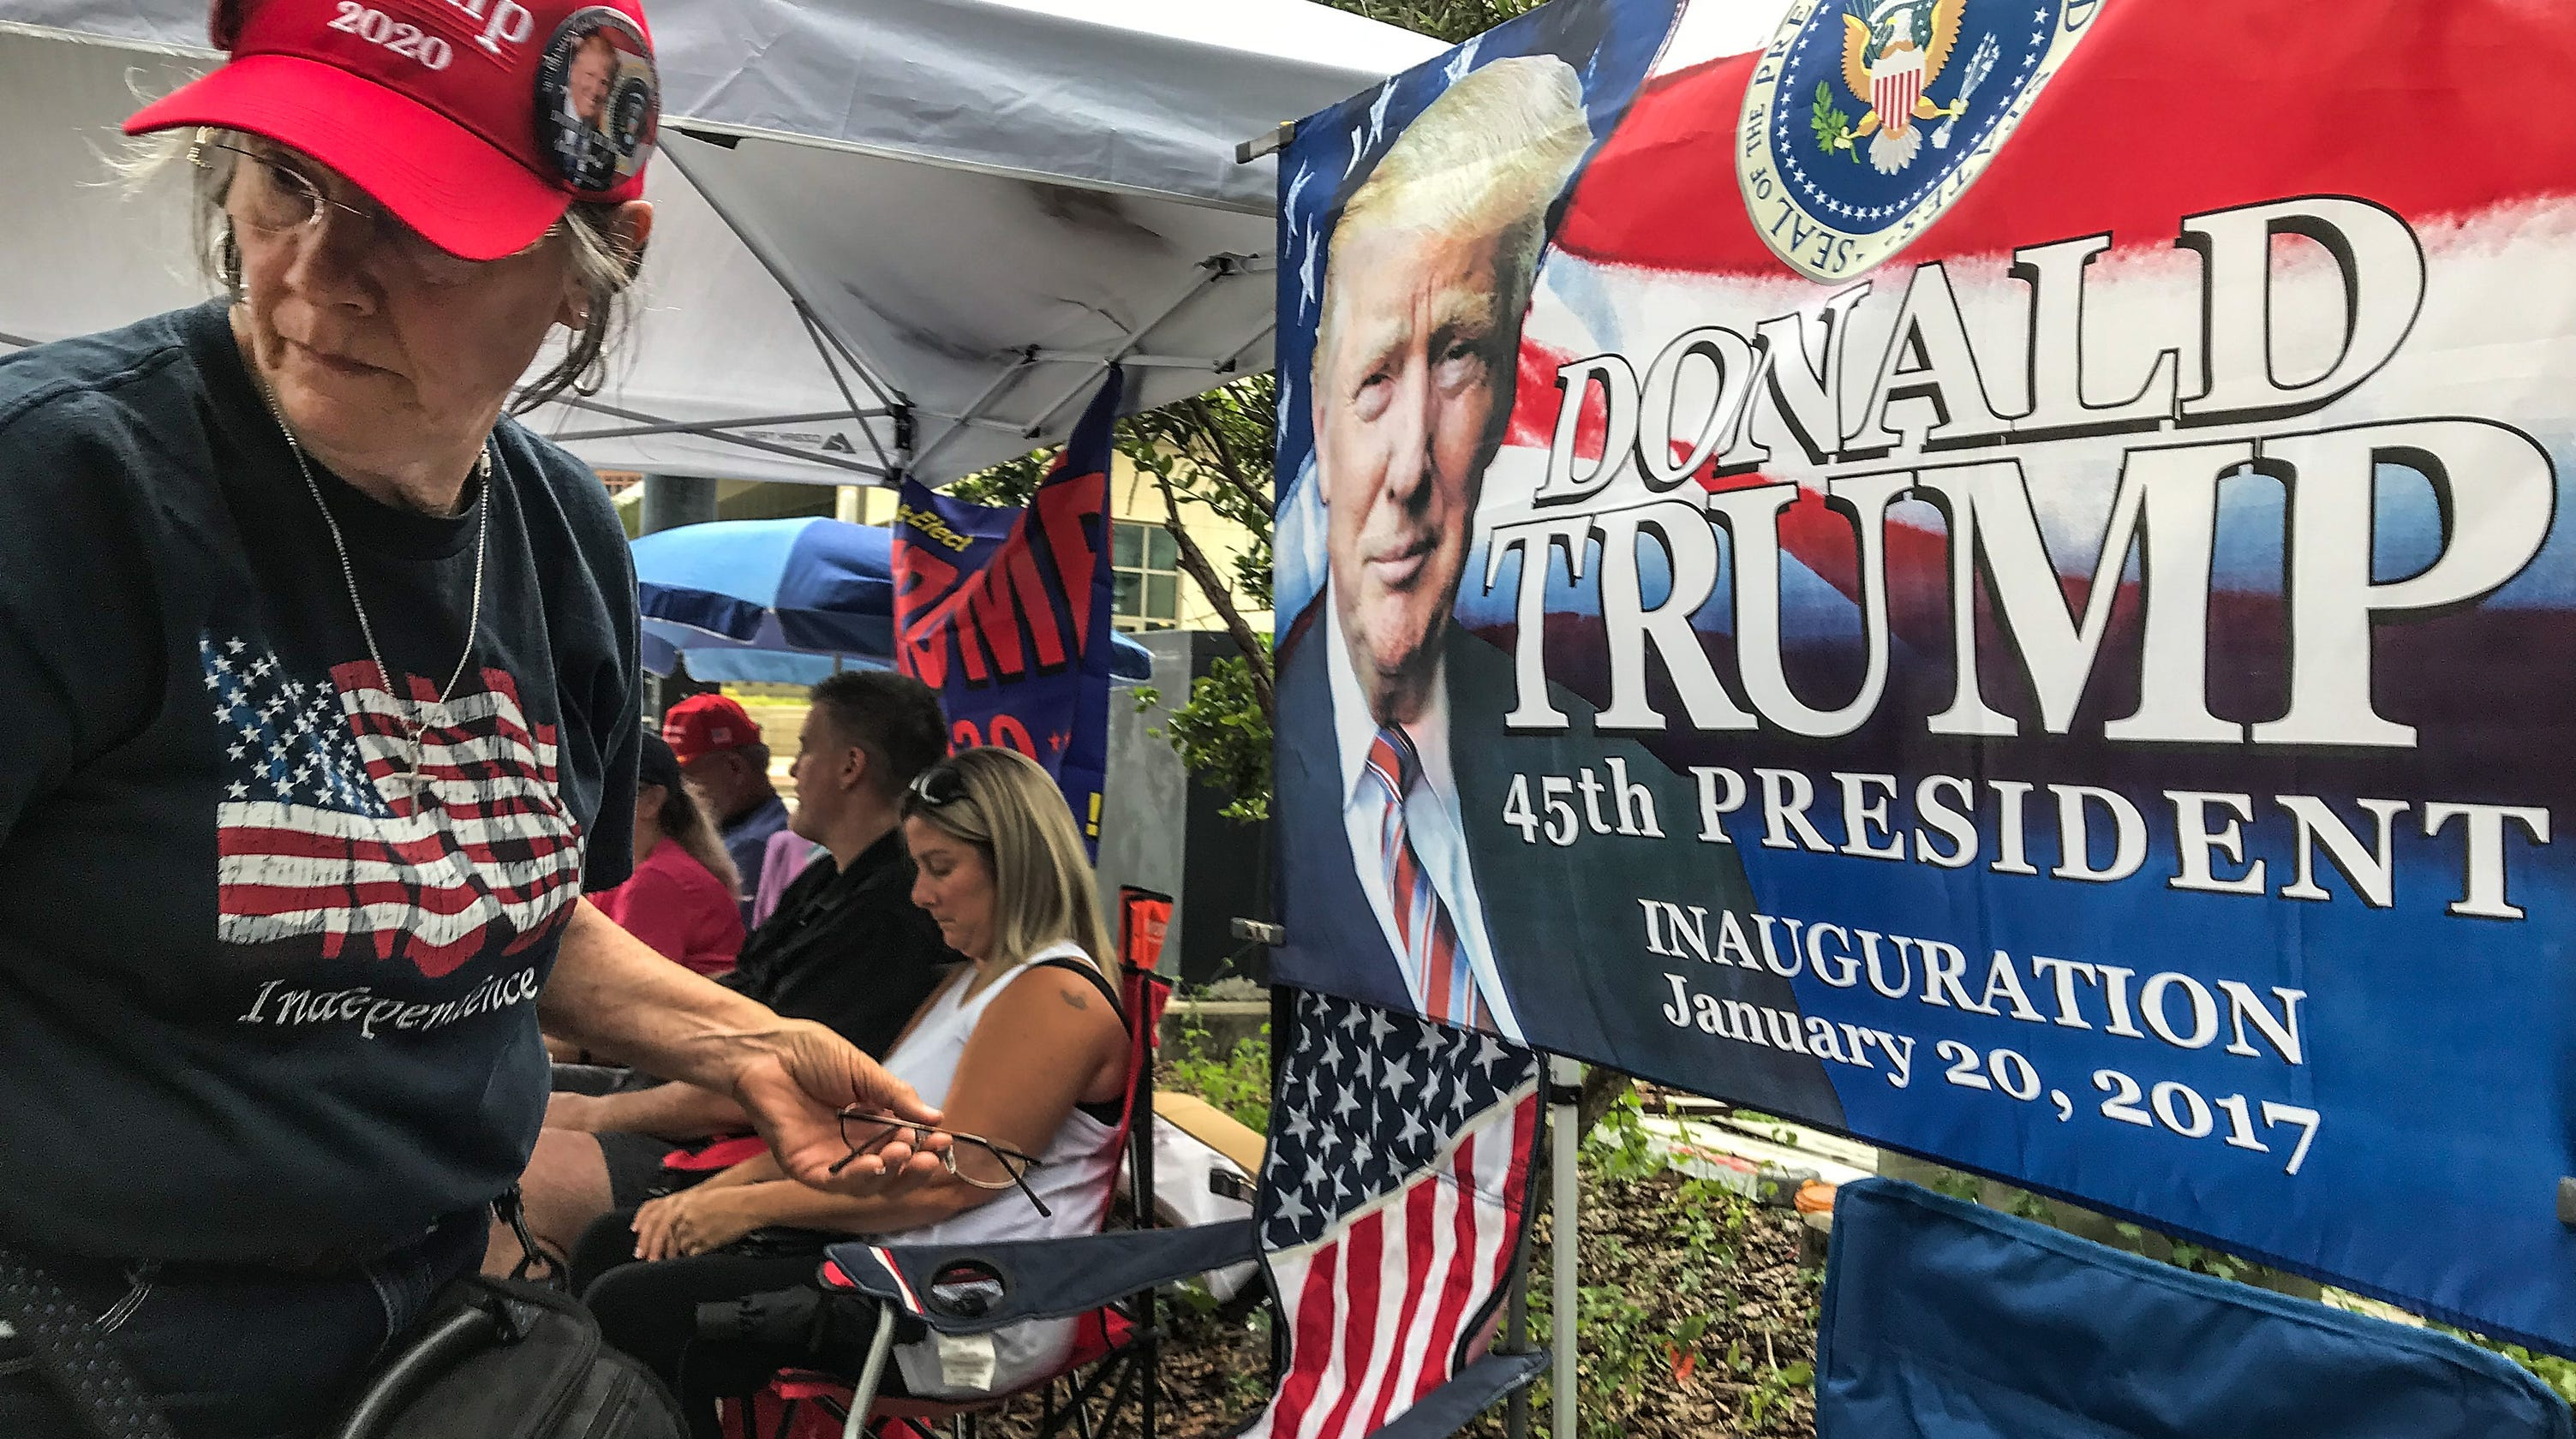 Donald Trump Rally In Orlando Supporters Arrive Early For